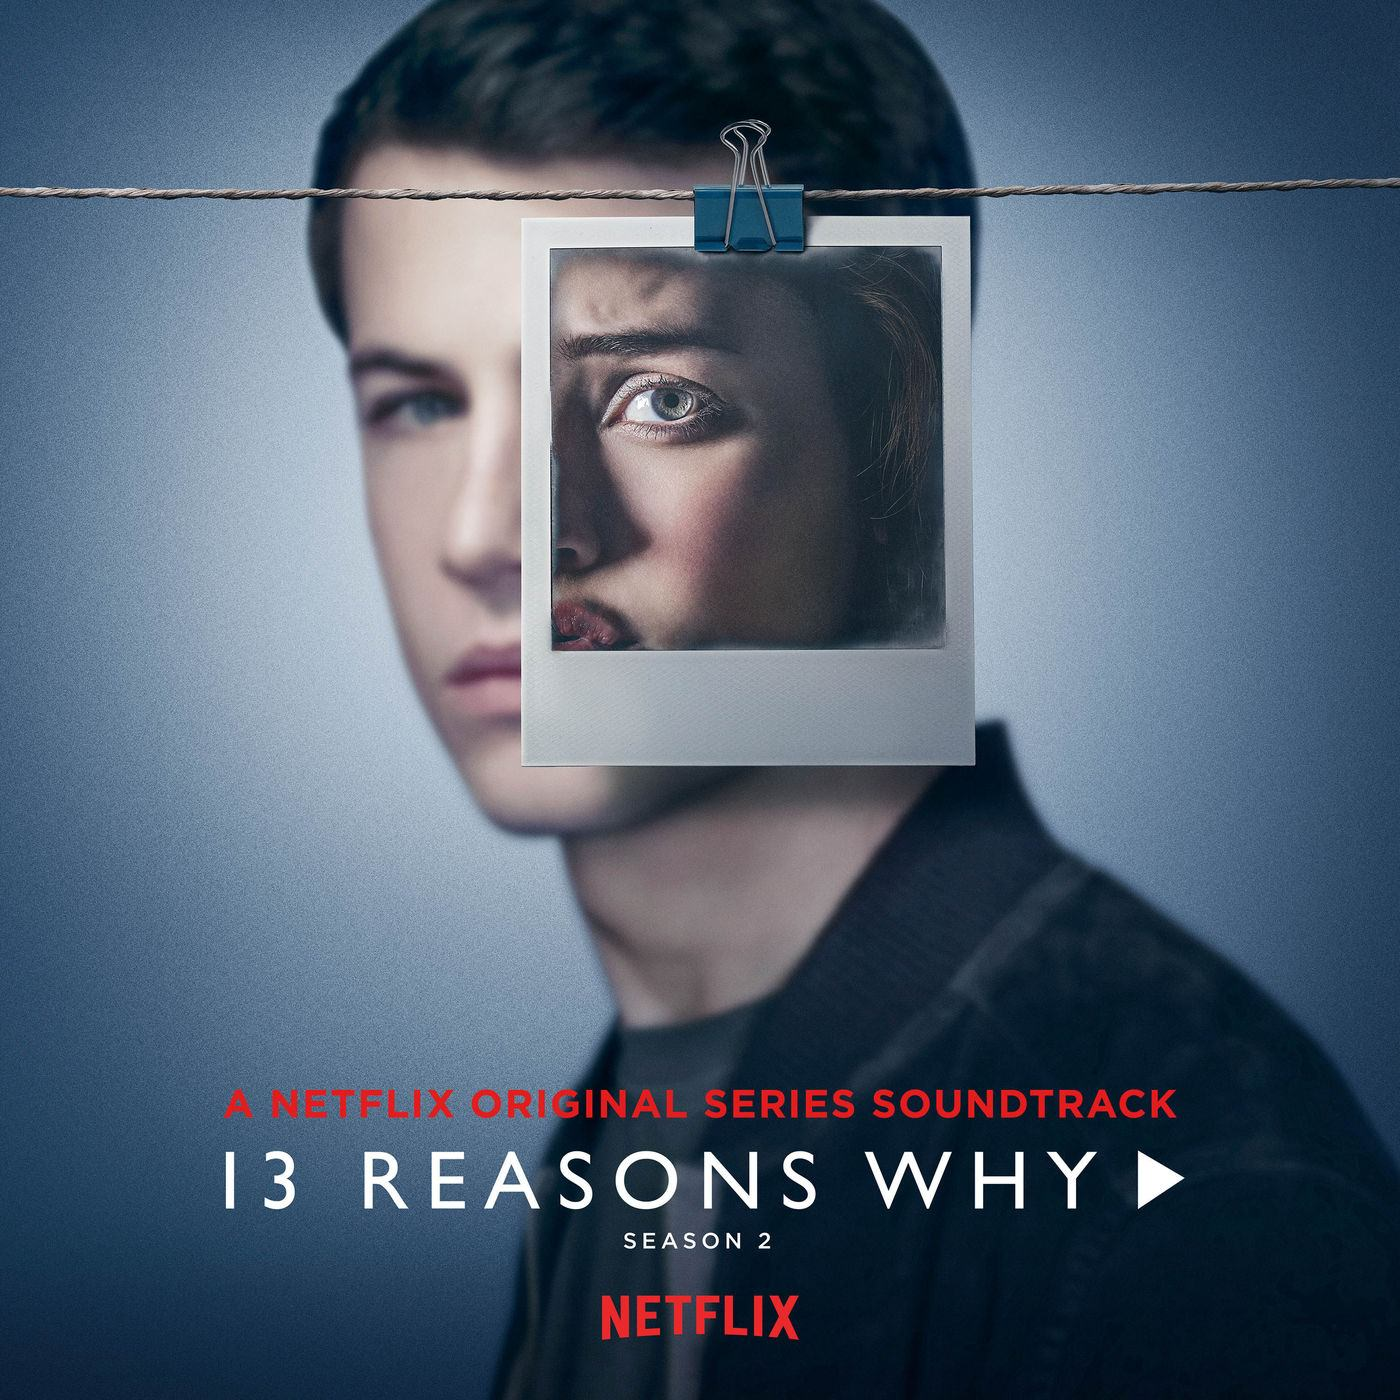 13 Reasons Why season 3 wallpapers